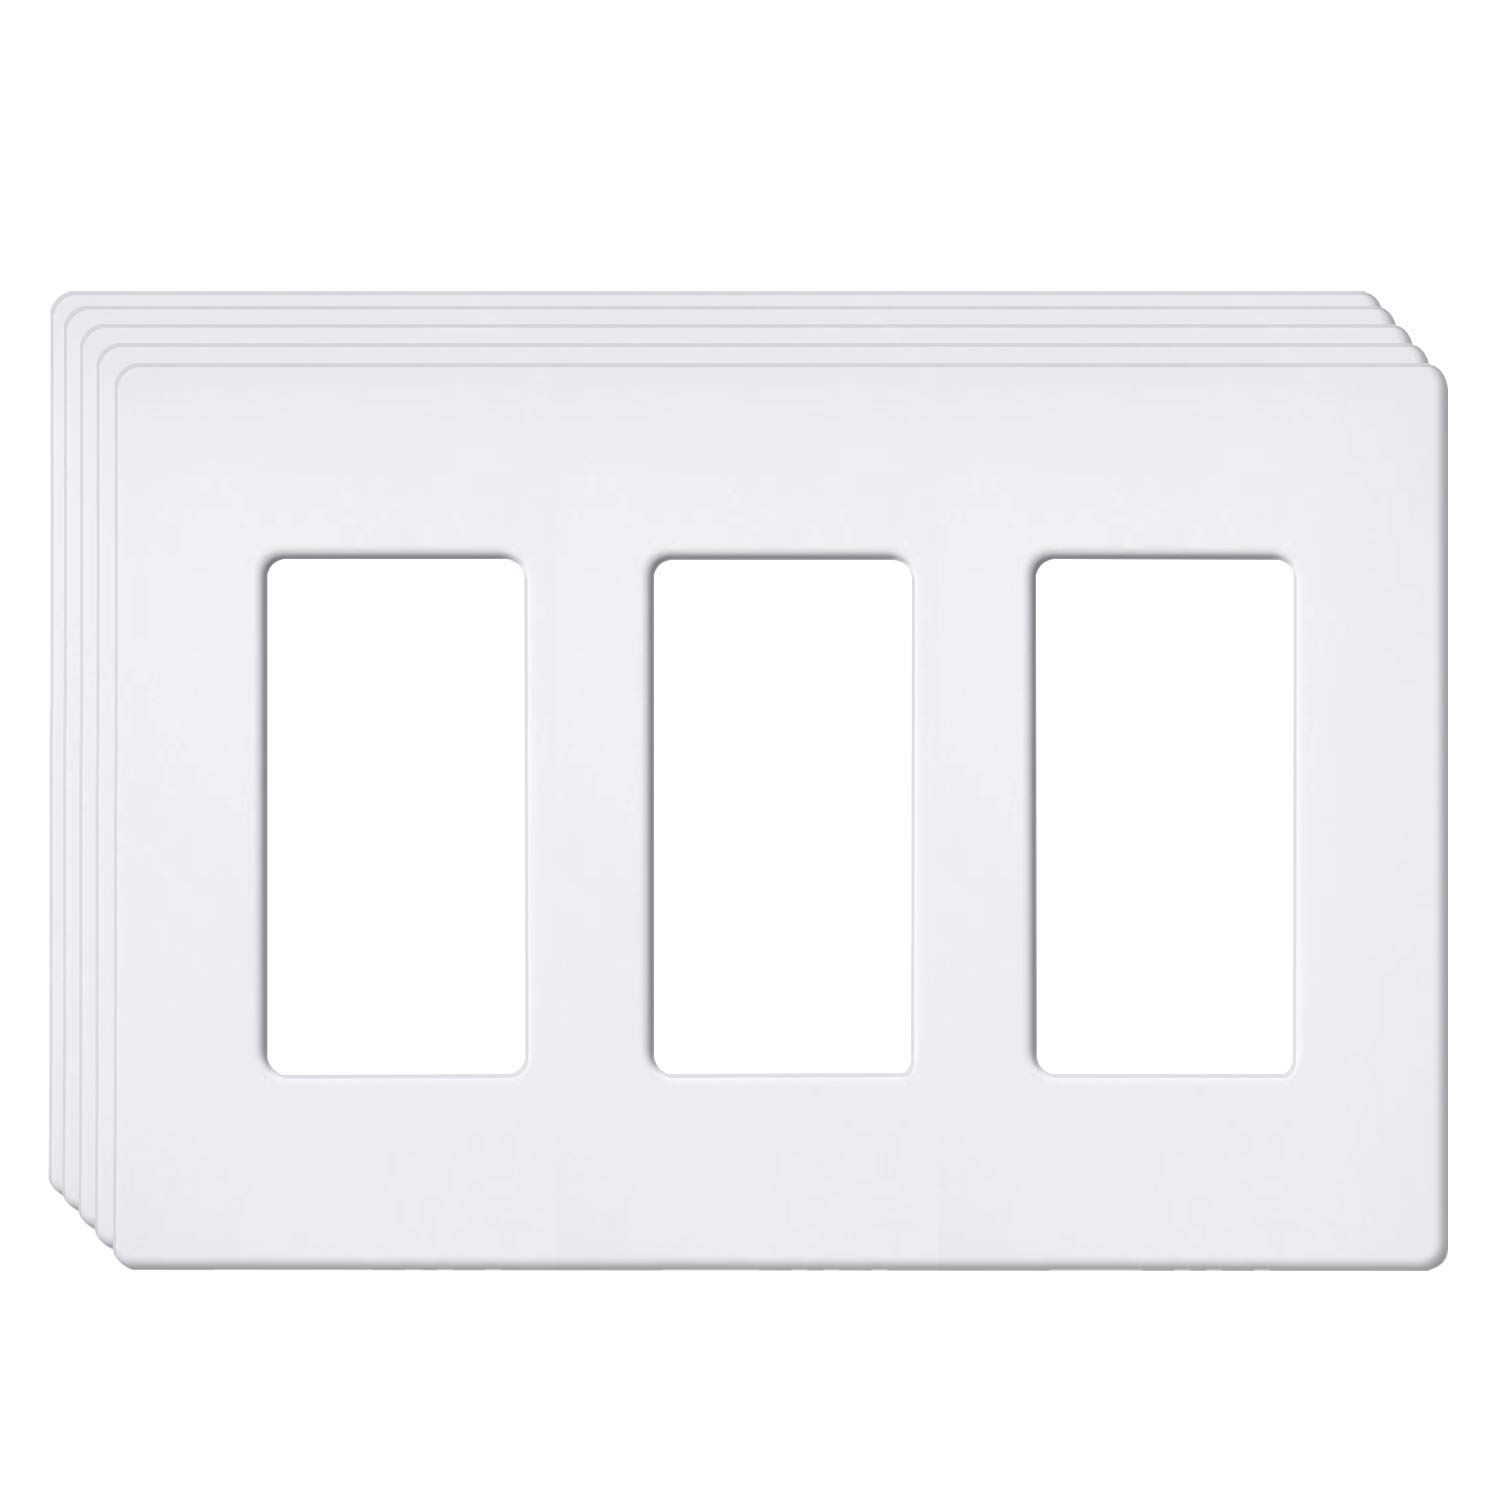 [5 Pack] BESTTEN 3-Gang Screwless Wall Plate, USWP6 Snow White Series, Slightly Larger Size Outlet Cover for Light Switch, Dimmer, USB, GFCI, Decor Receptacle, Residential and Commercial, UL Listed by BESTTEN